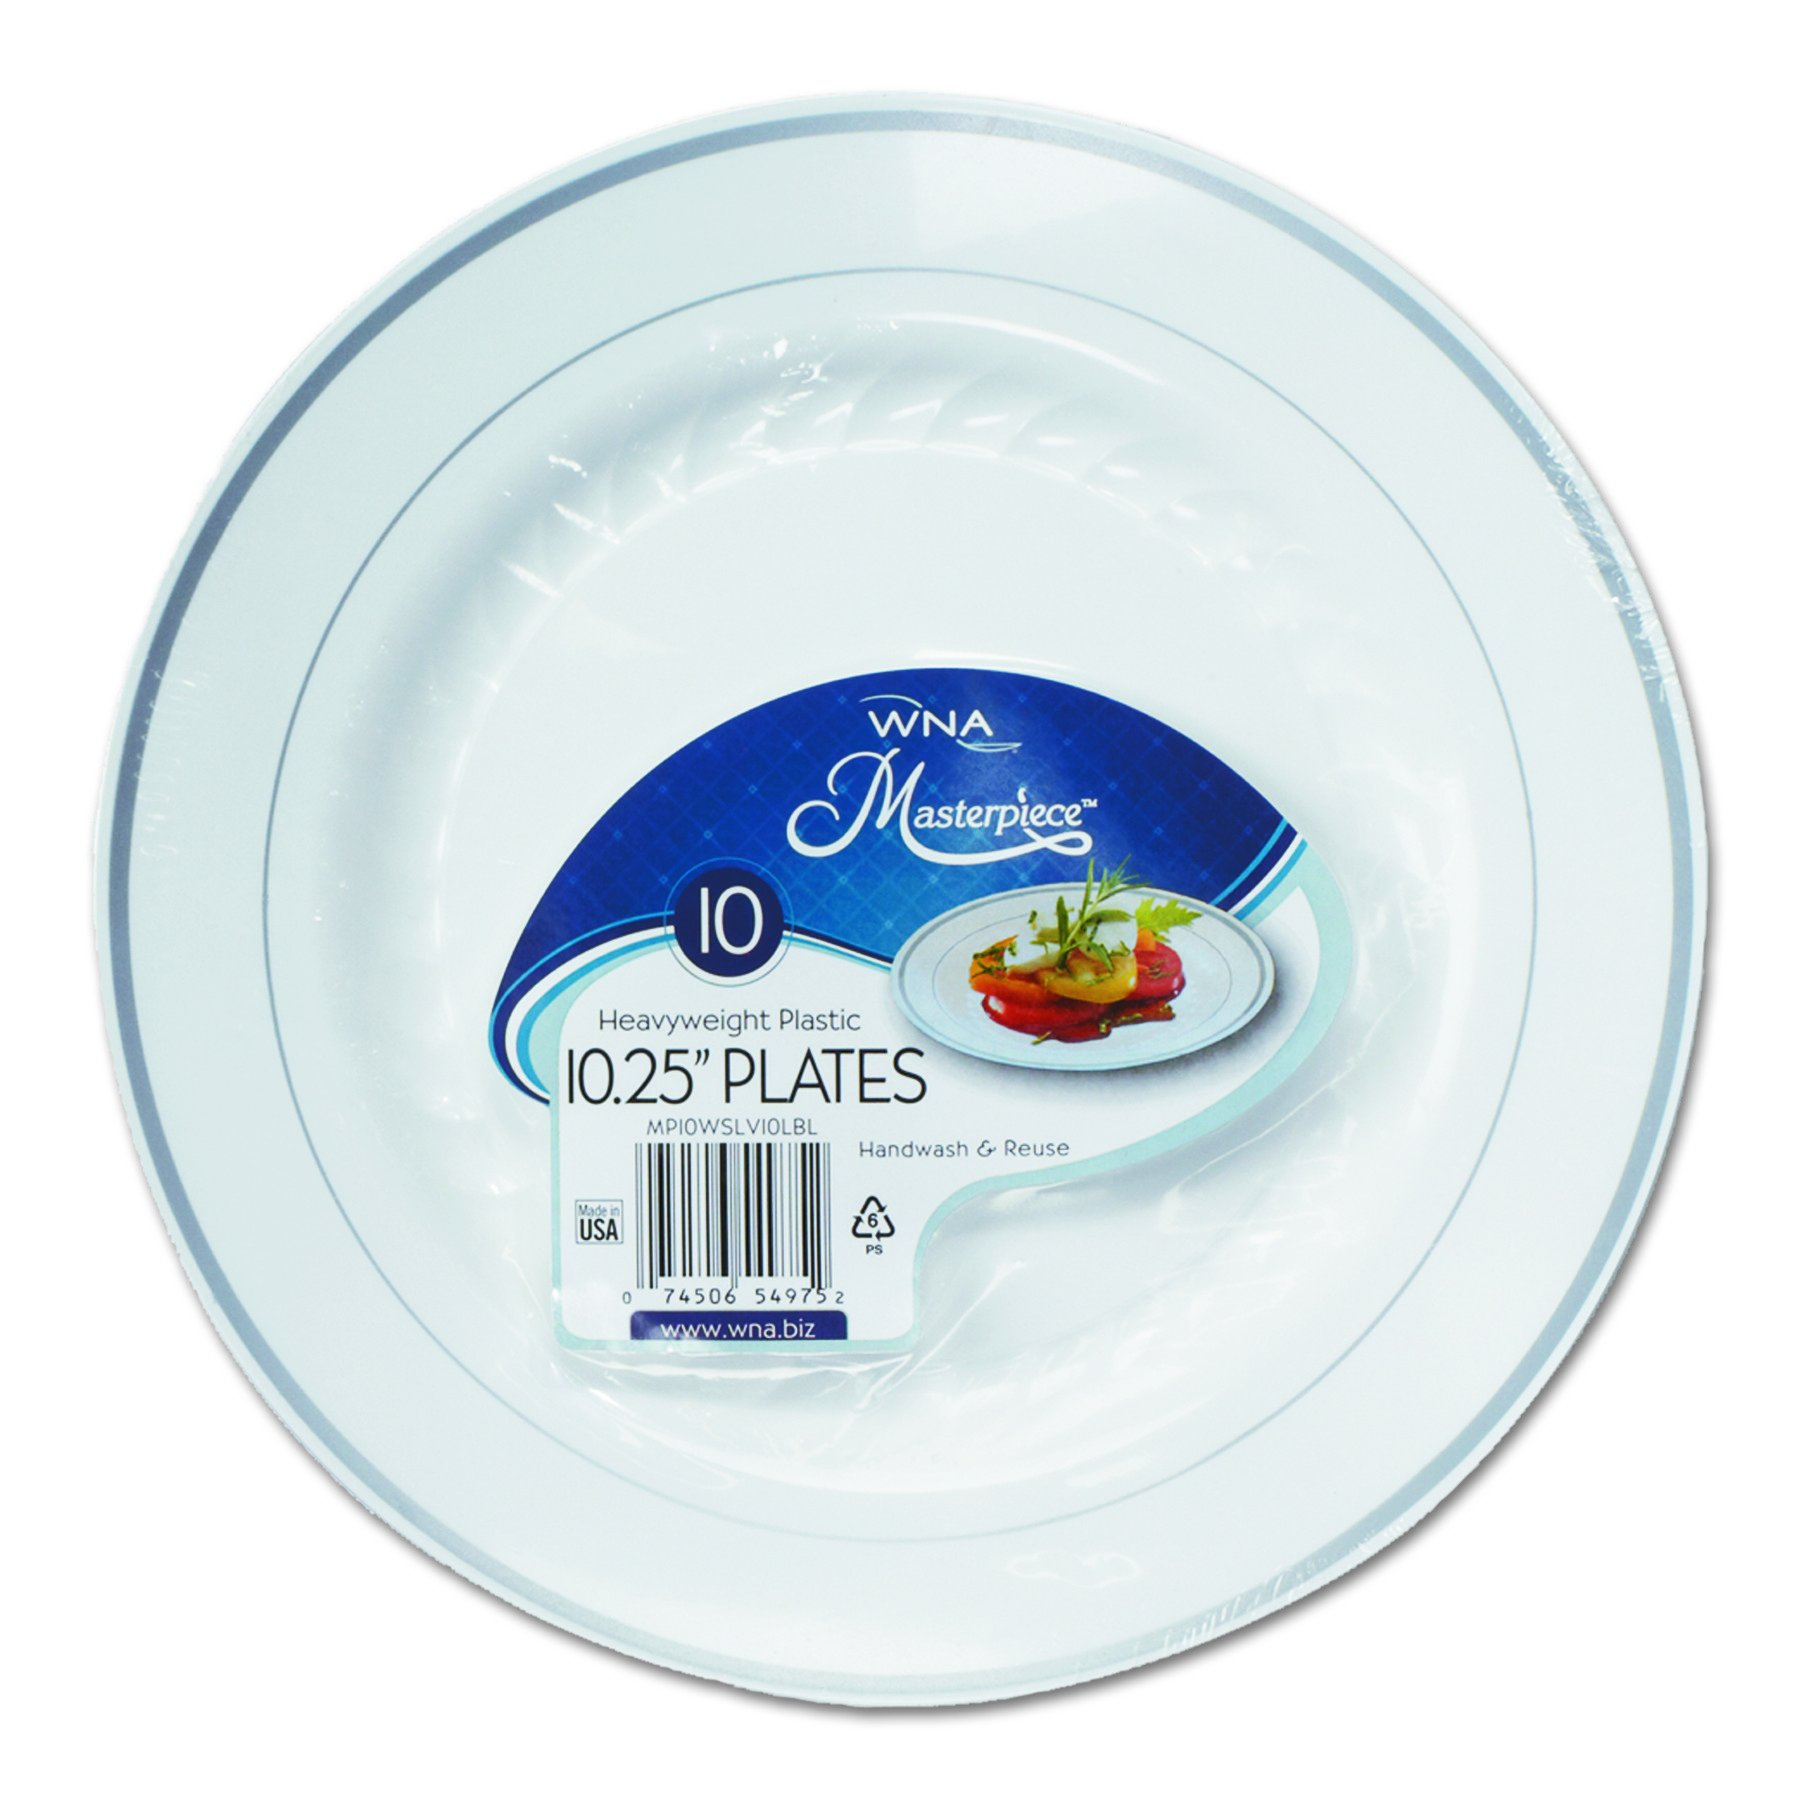 WNA RSM101210WS Masterpiece Plastic Plates, 10 1/4 Inch Diameter, White With Silver Accents, Pack of 10 (Case of 12 Packs) by WNA